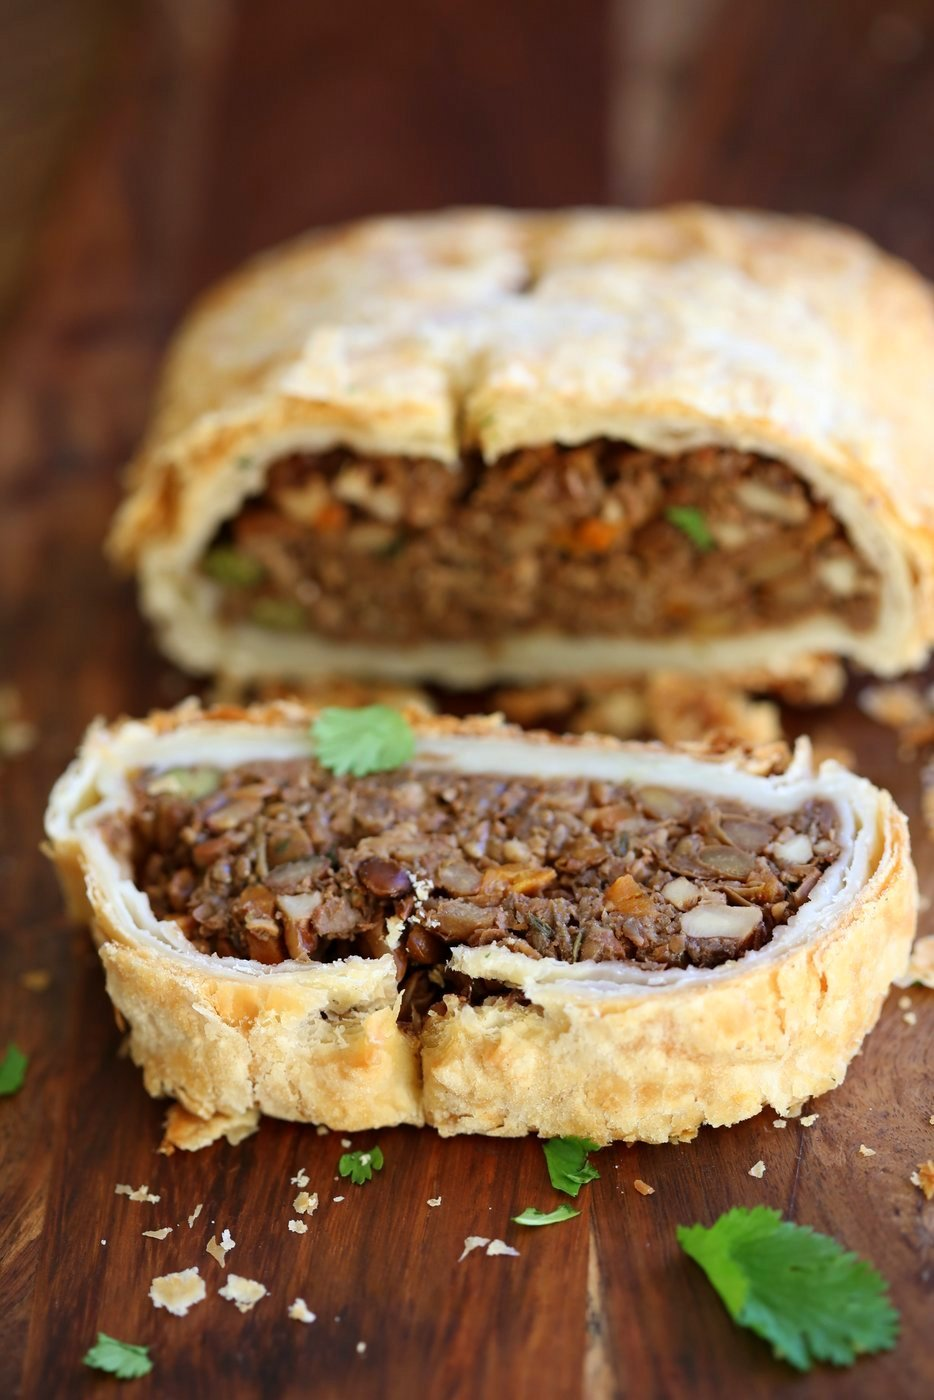 Mushroom lentil Wellington. Easy Vegan Wellington for the Holidays and potlucks. Puff pastry wrapped lentil walnut mushroom loaf.  Vegan Recipe. Make into a loaf to make gluten-free. #vegan #veganricha